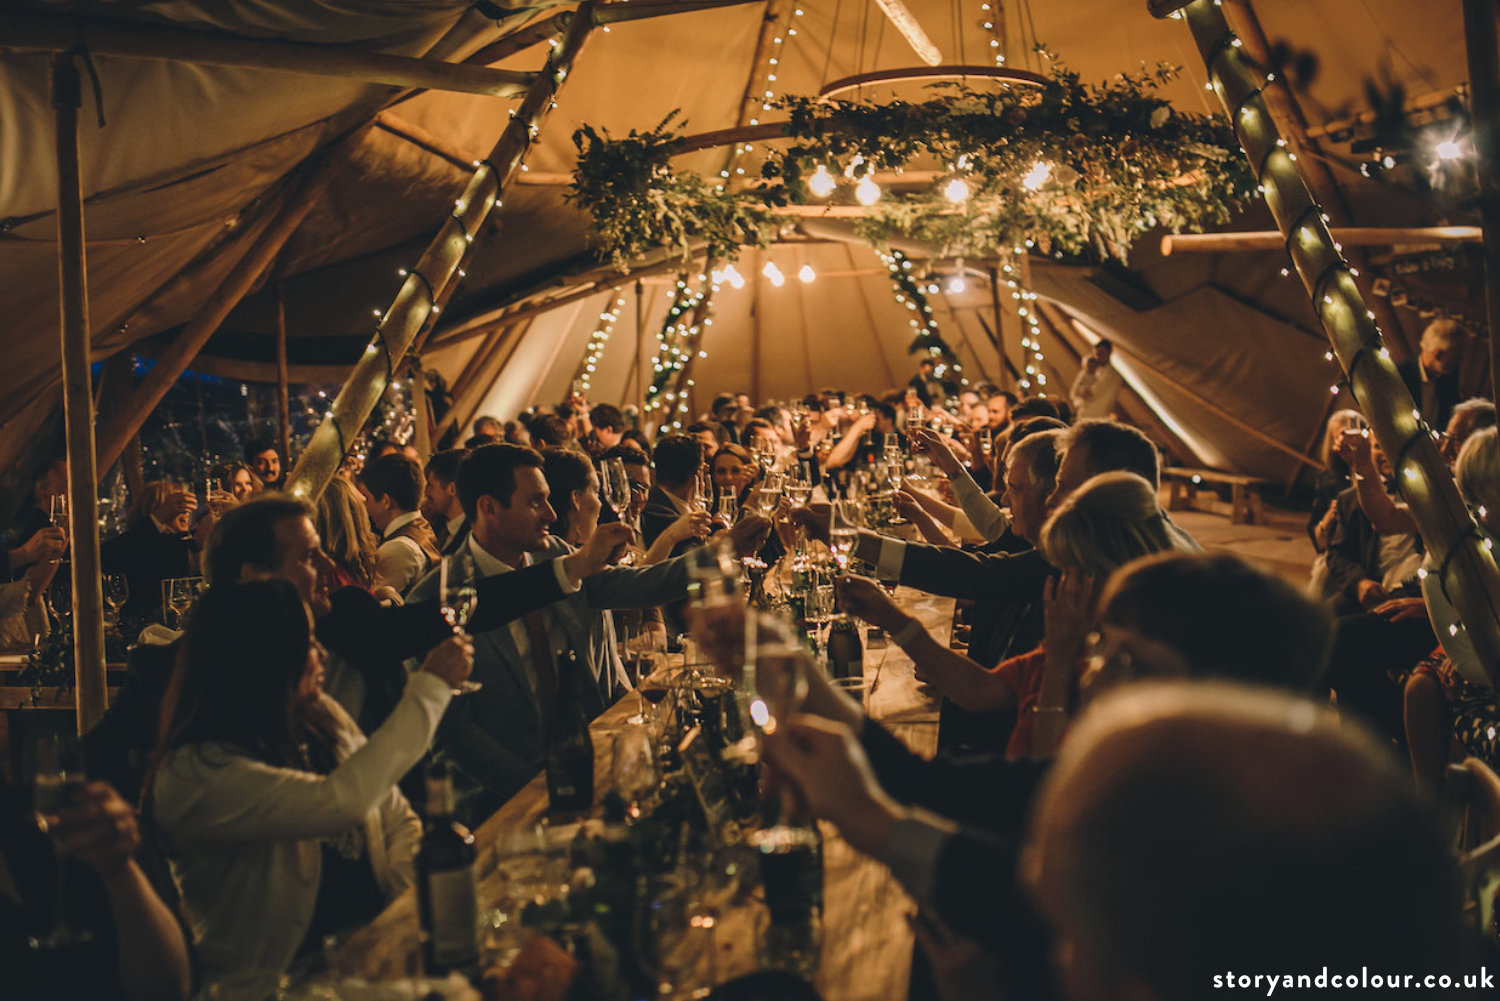 Tipi_wedding_teepee.jpg